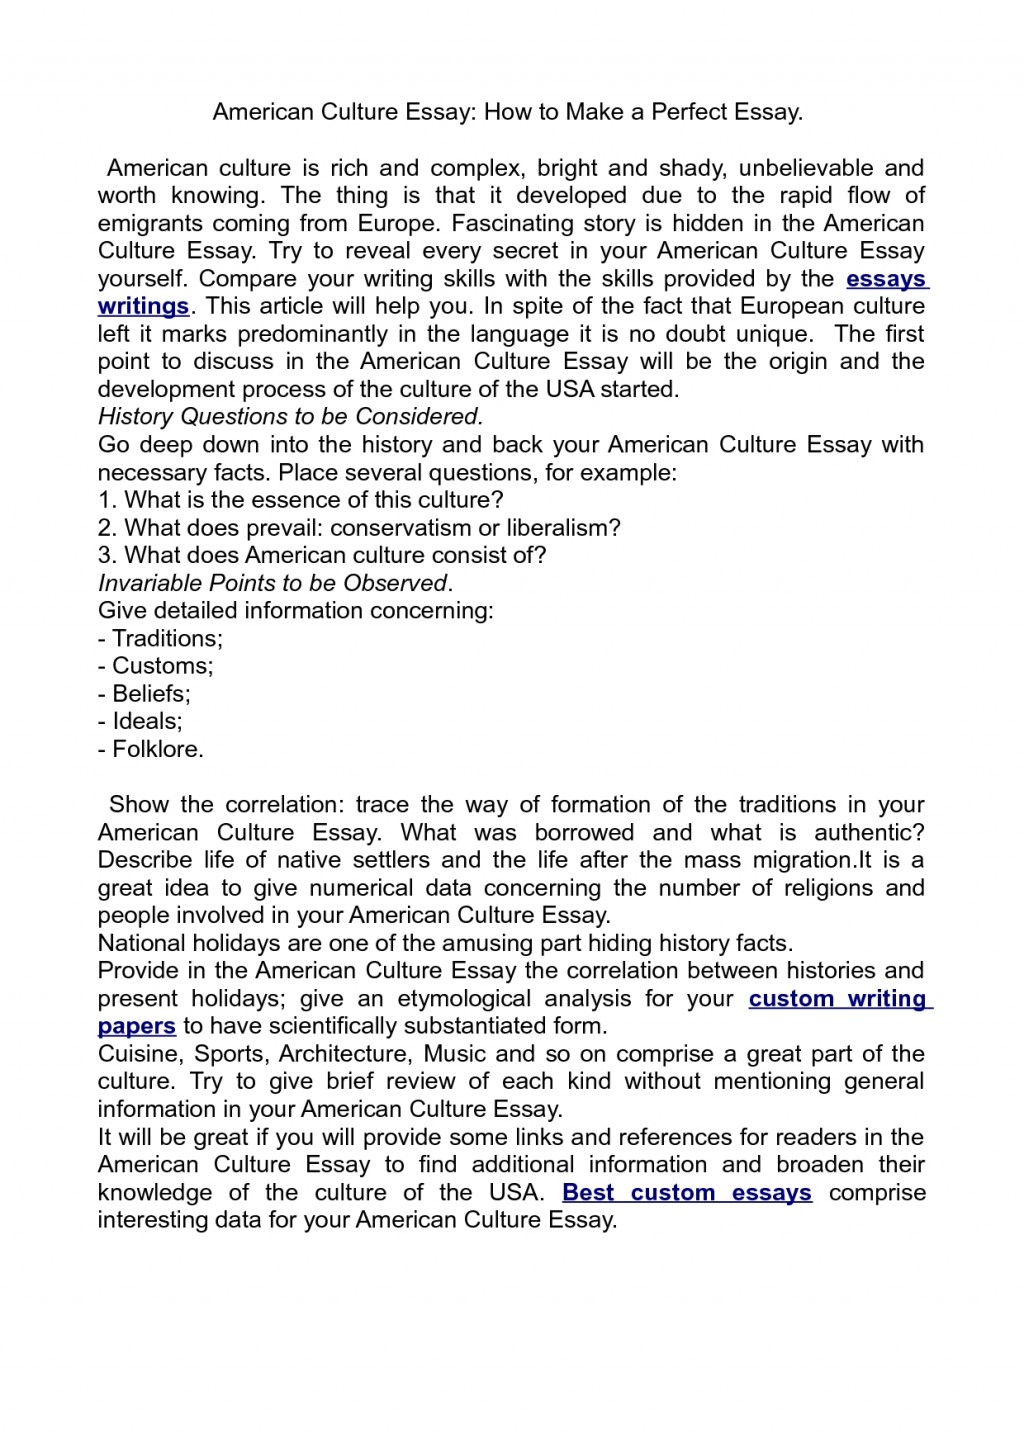 002 Essay Example What Is An American Stupendous Thesis Your Dream Ideas Large